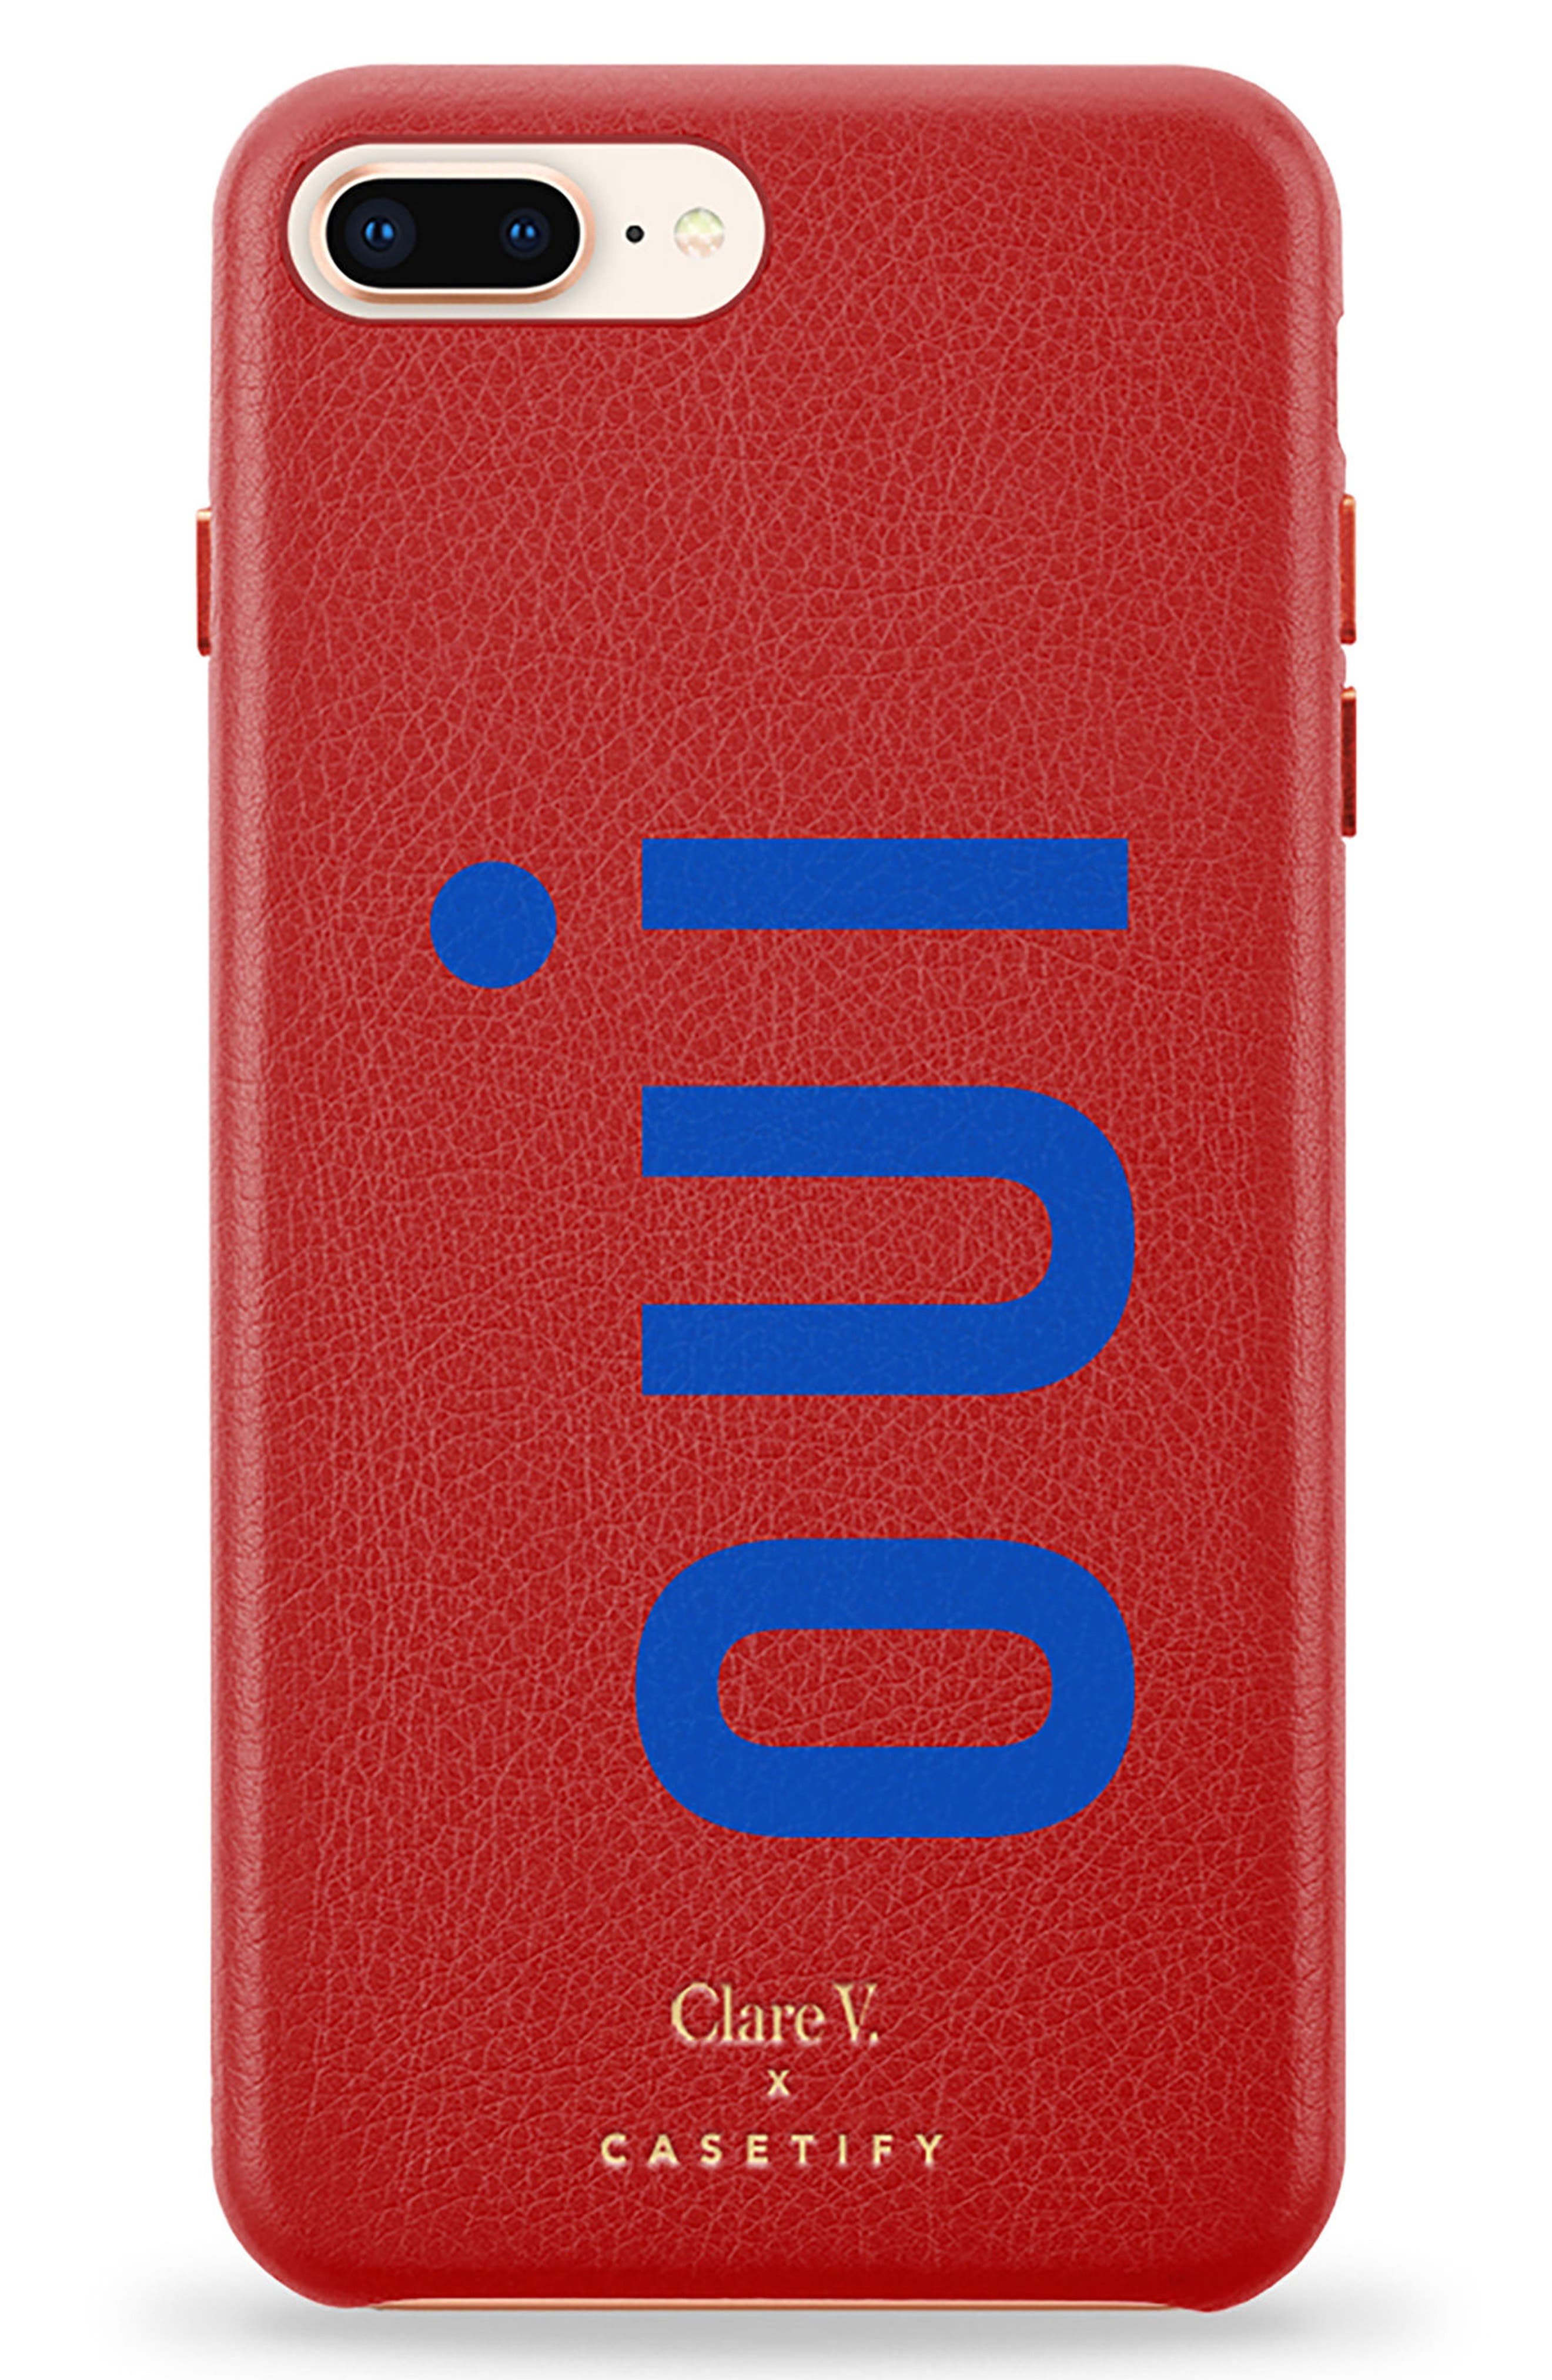 x Clare V. Oui Leather iPhone 7/8 & 7/8 Plus Case,                         Main,                         color, Red Multi